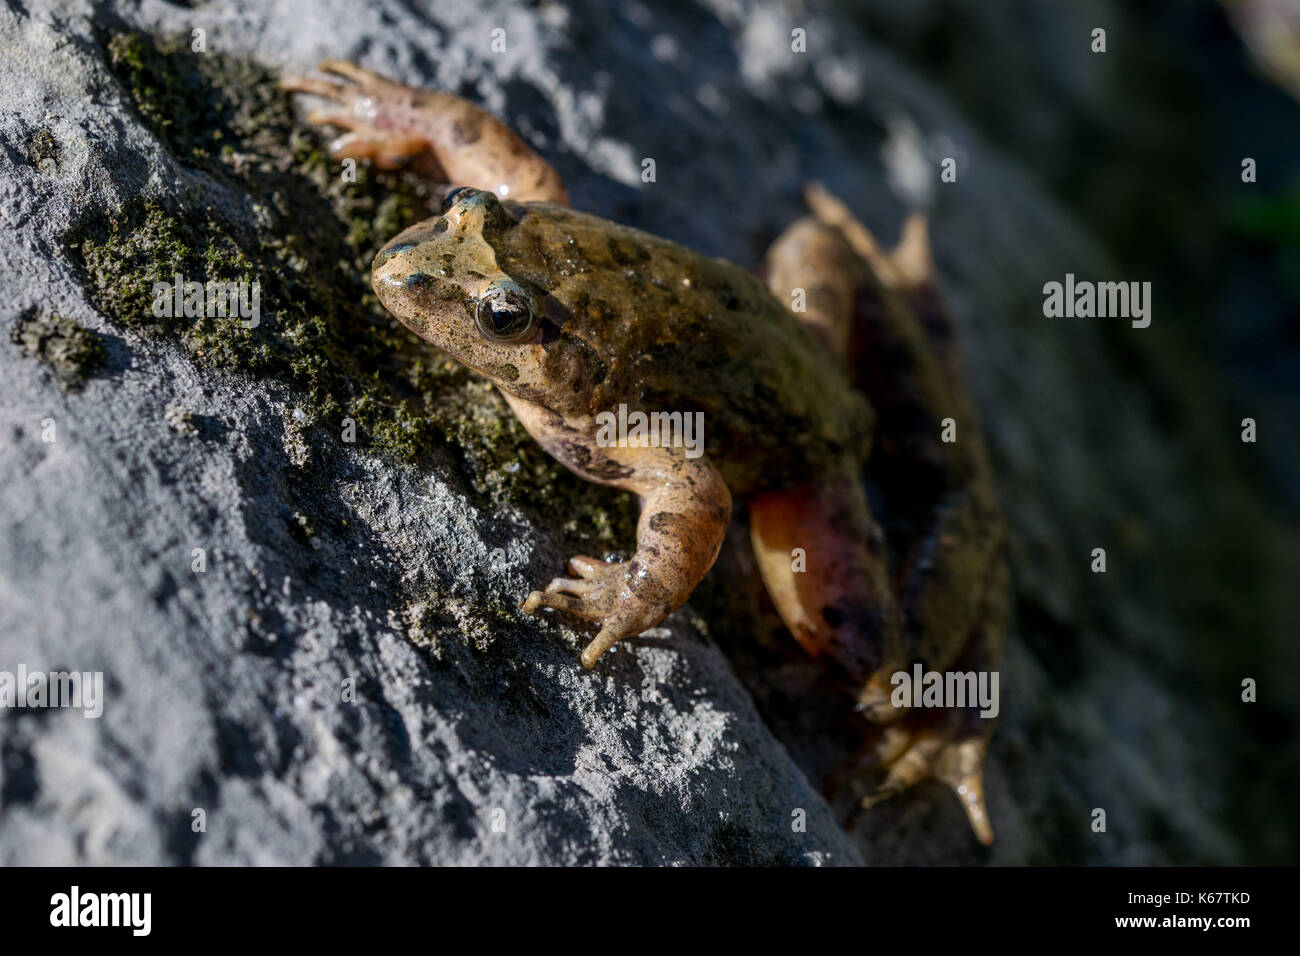 A Mediterranean Painted Frog, Discoglossus pictus, resting on a rock near a water pond in a Maltese valley, Malta - Stock Image